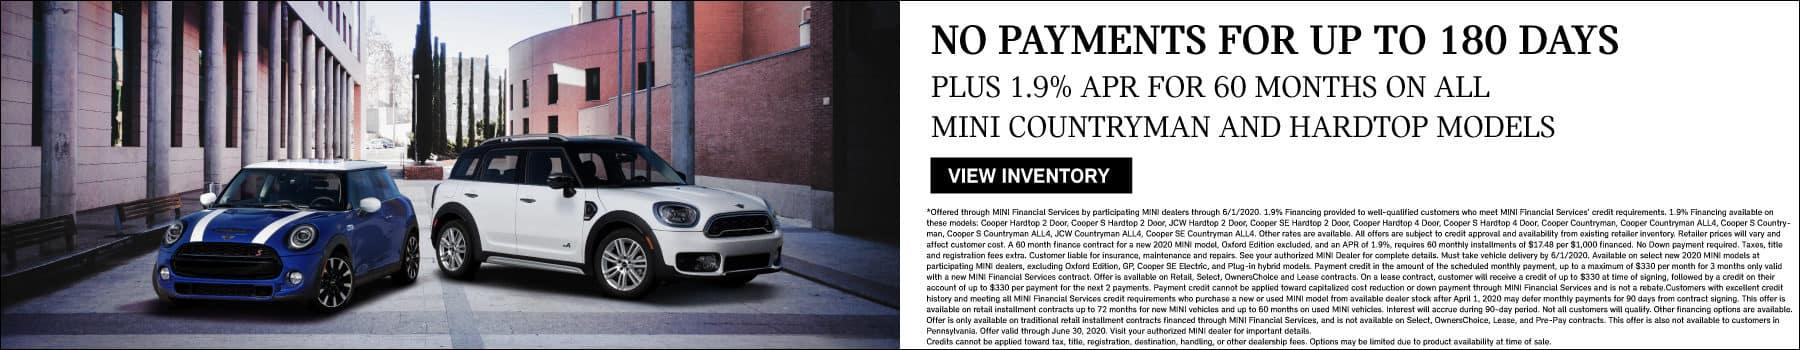 no payments for 180 days on countrymans and hardtops